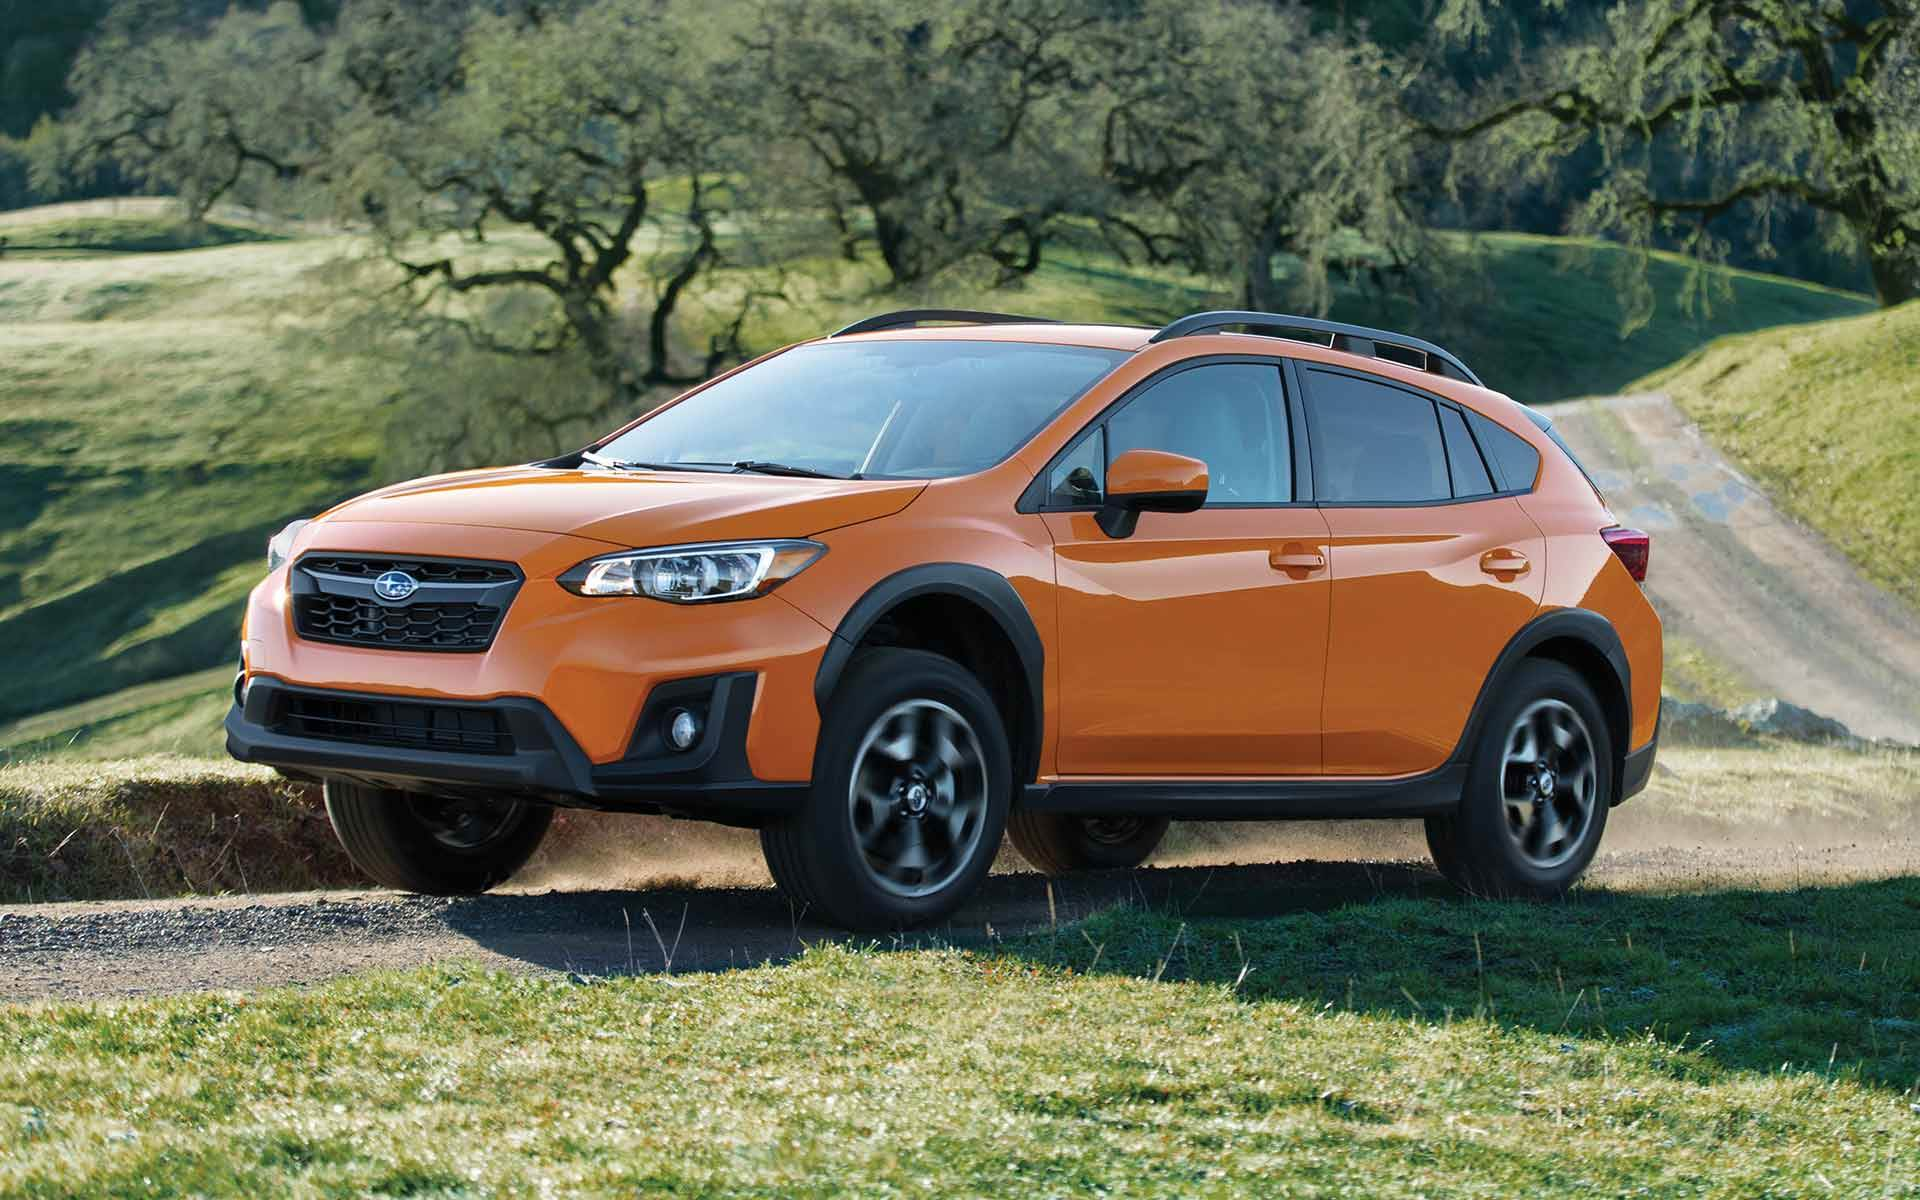 2019 Subaru Crosstrek safety features